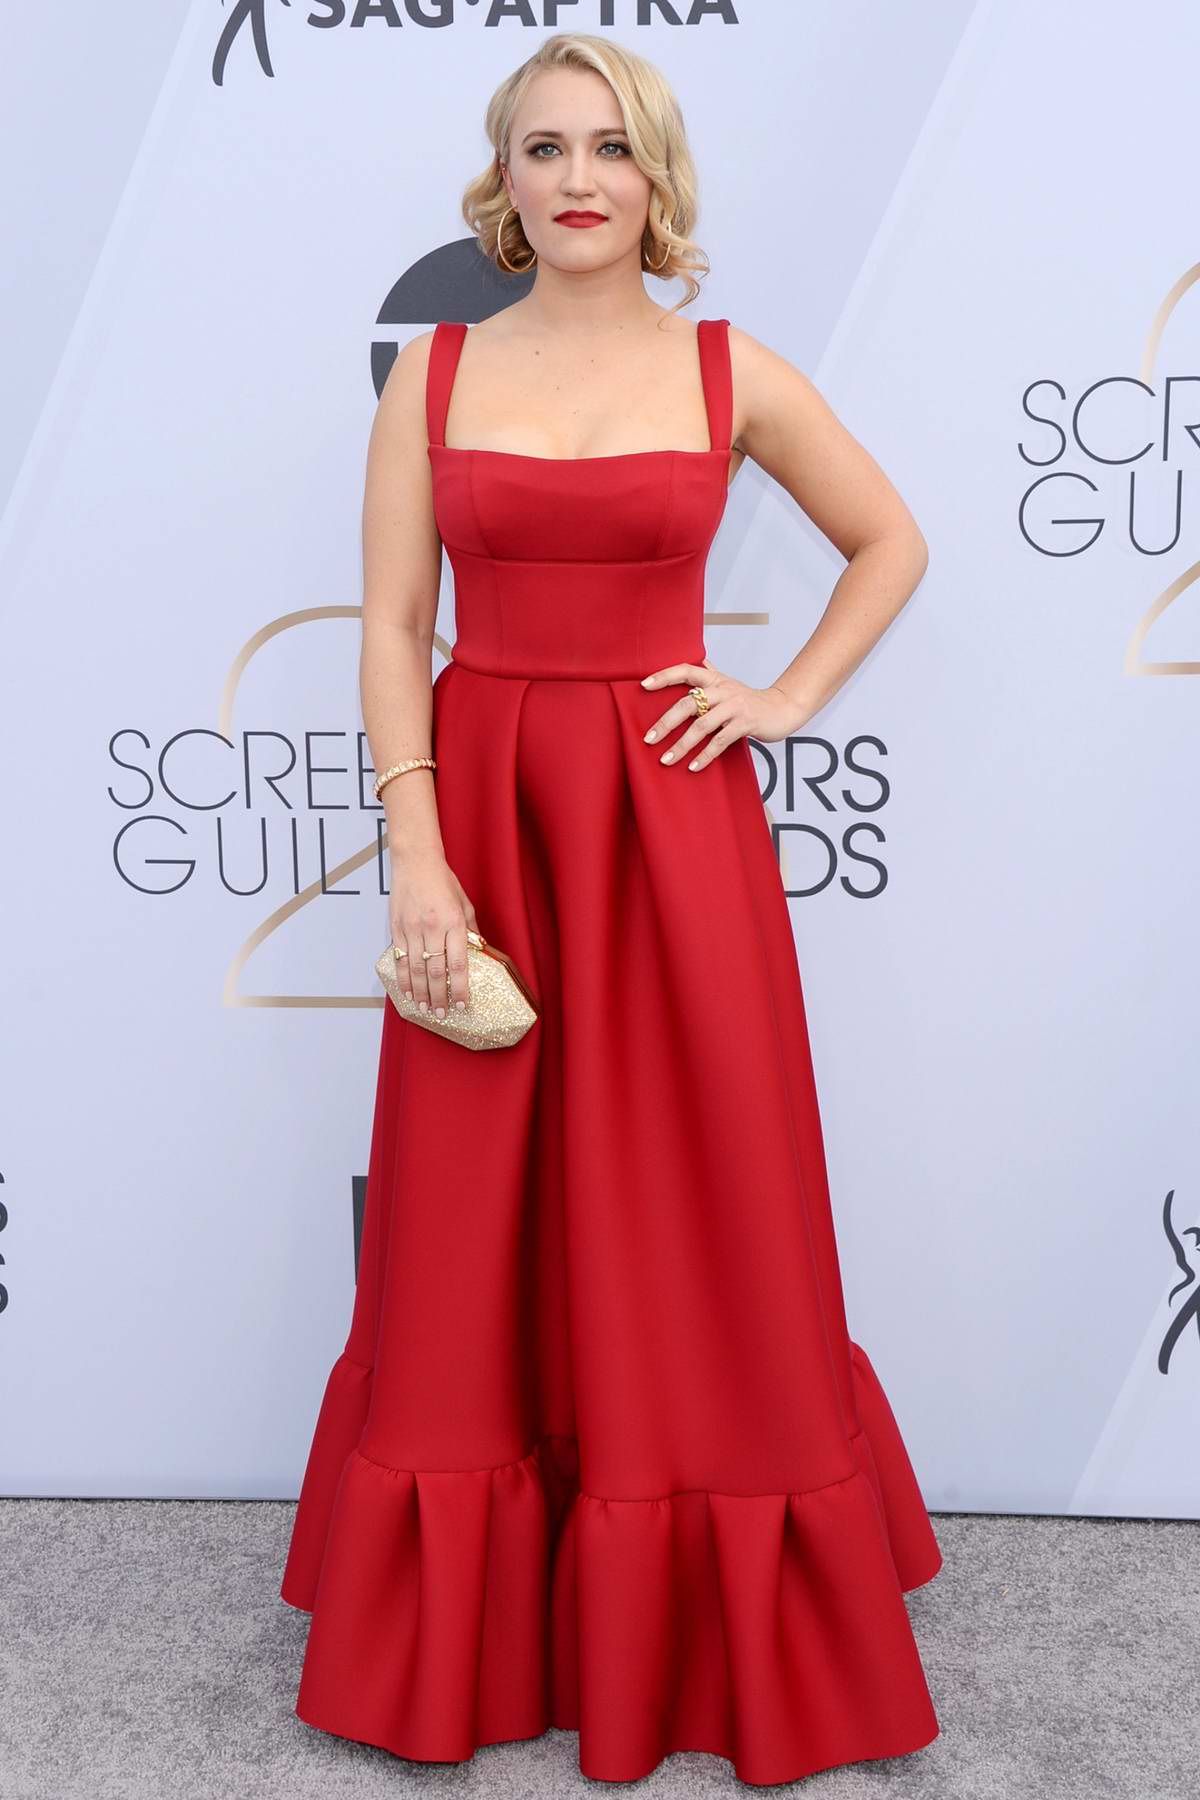 Emily Osment attends the 25th Annual Screen Actors Guild Awards (SAG 2019) at the Shrine Auditorium in Los Angeles